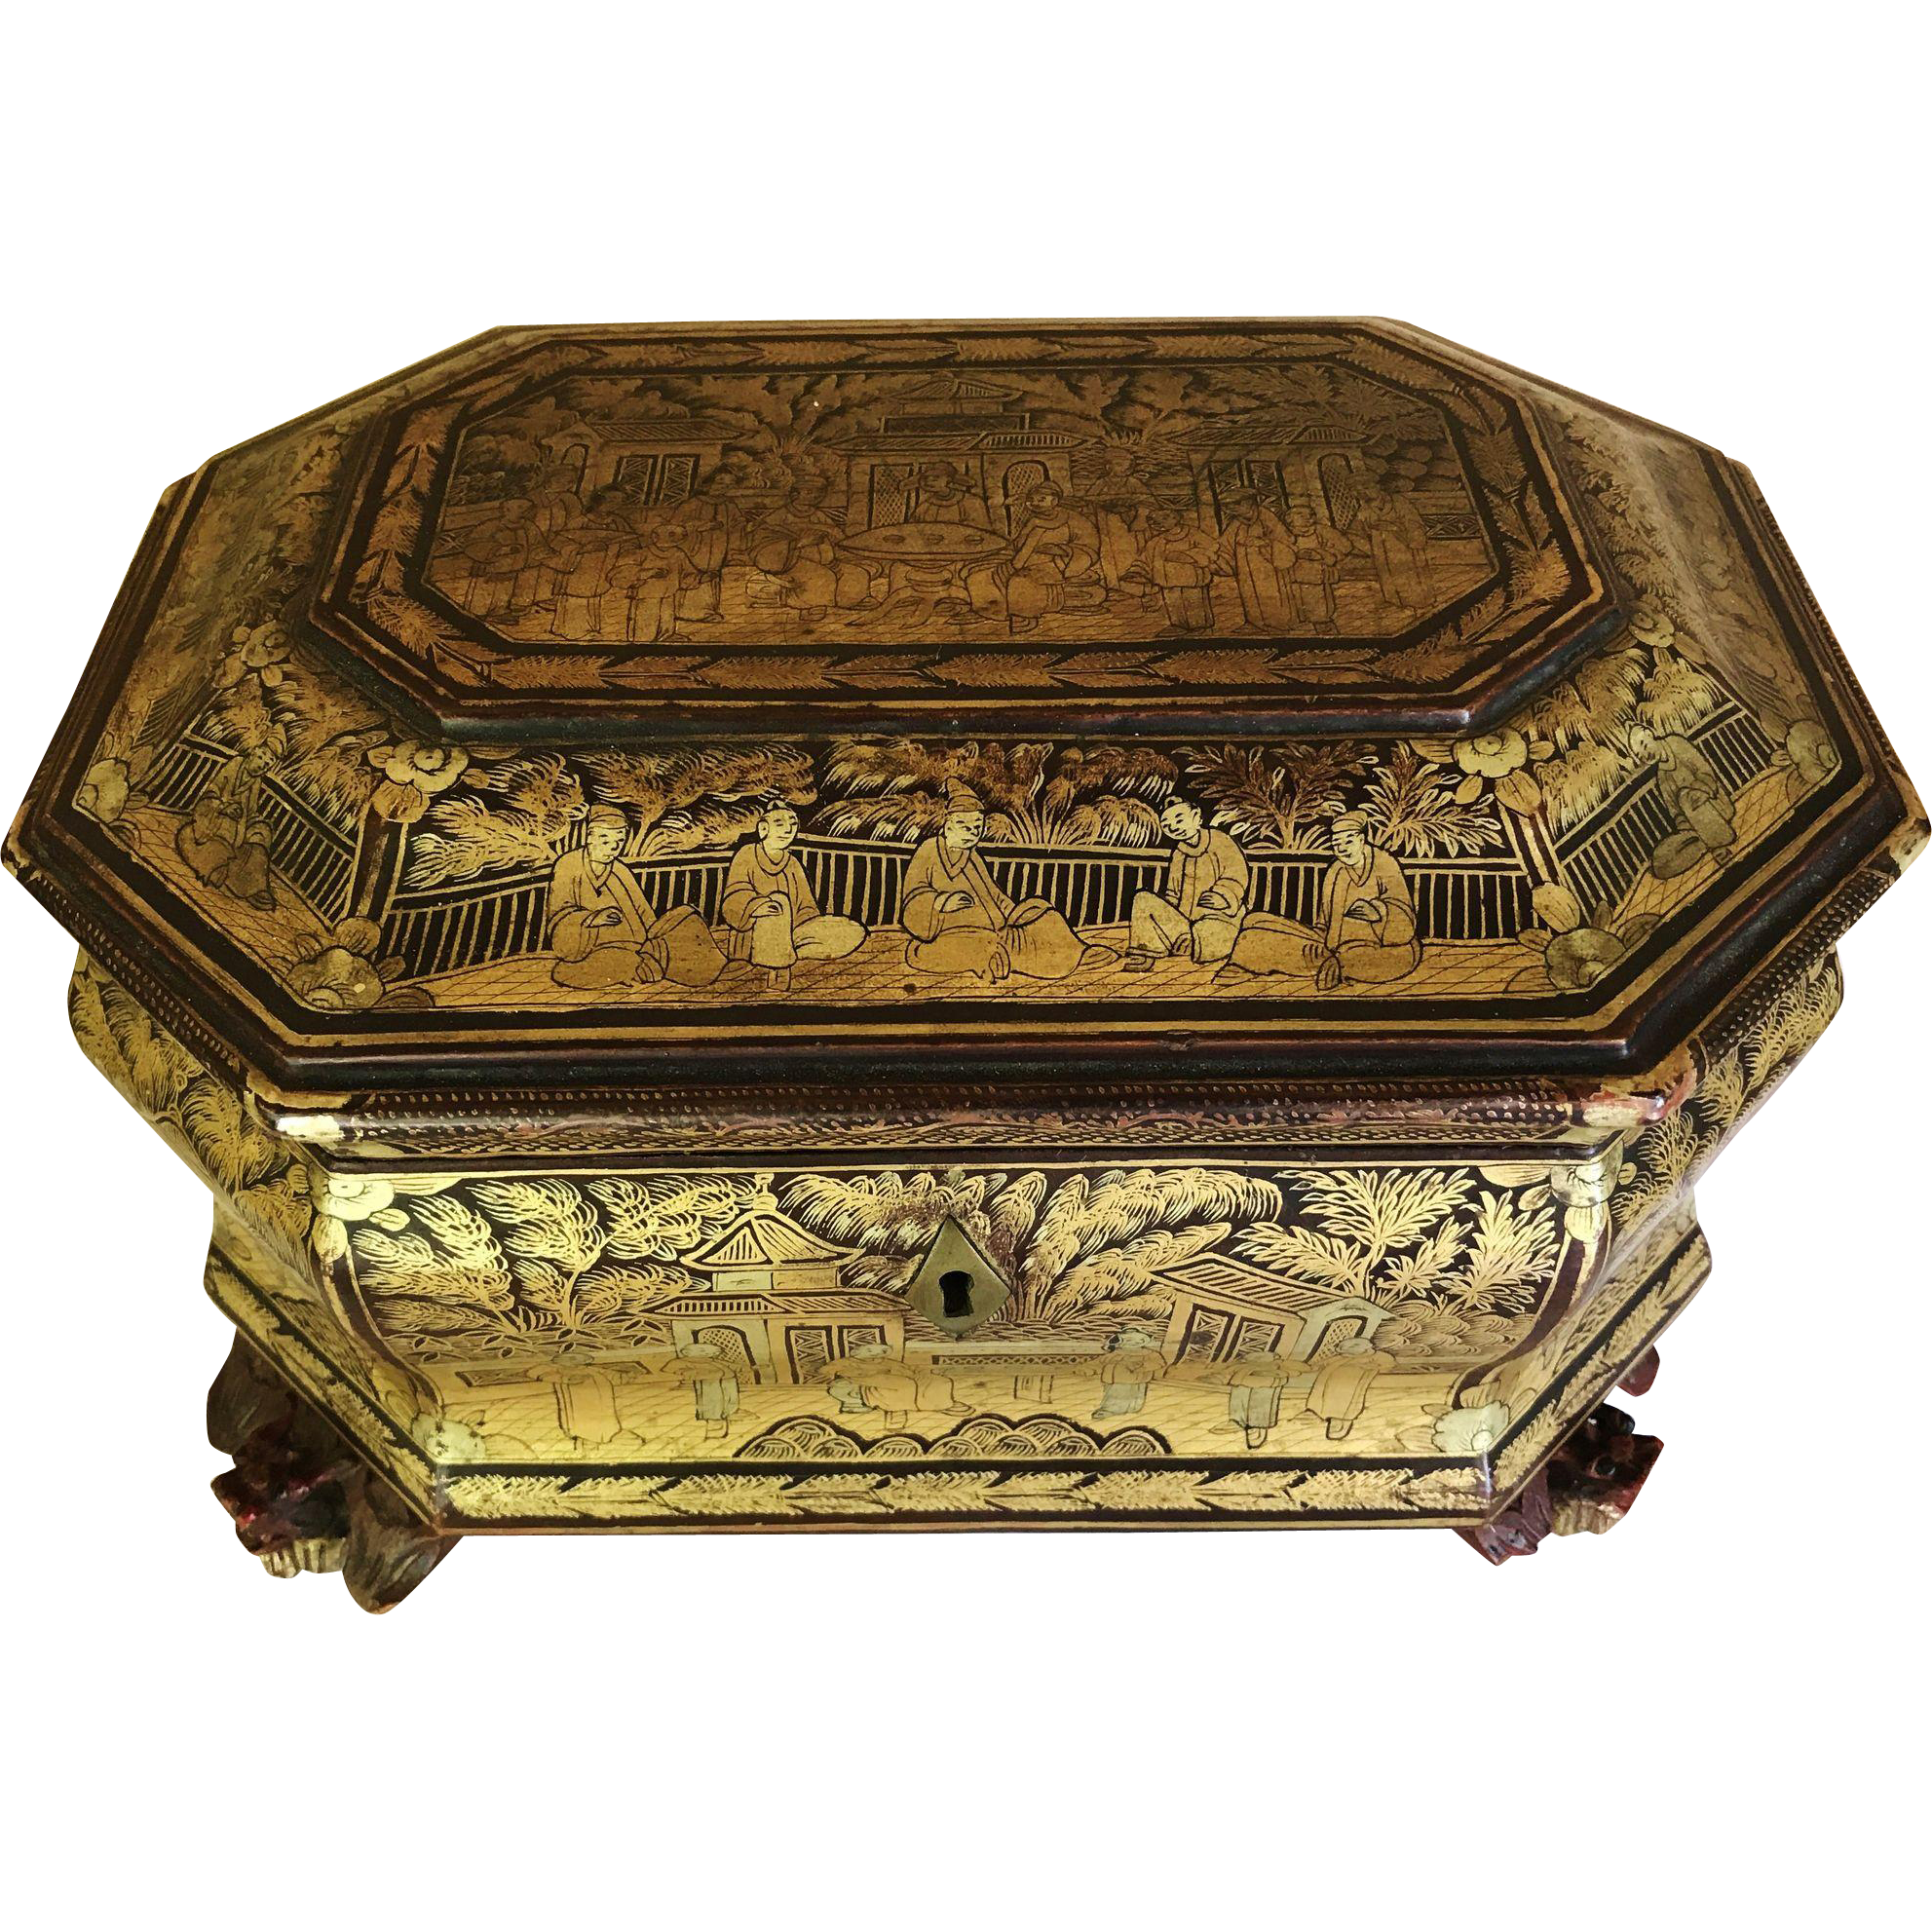 chinese export tea caddy chest lacquered gilded from collectorsdelights on ruby lane. Black Bedroom Furniture Sets. Home Design Ideas